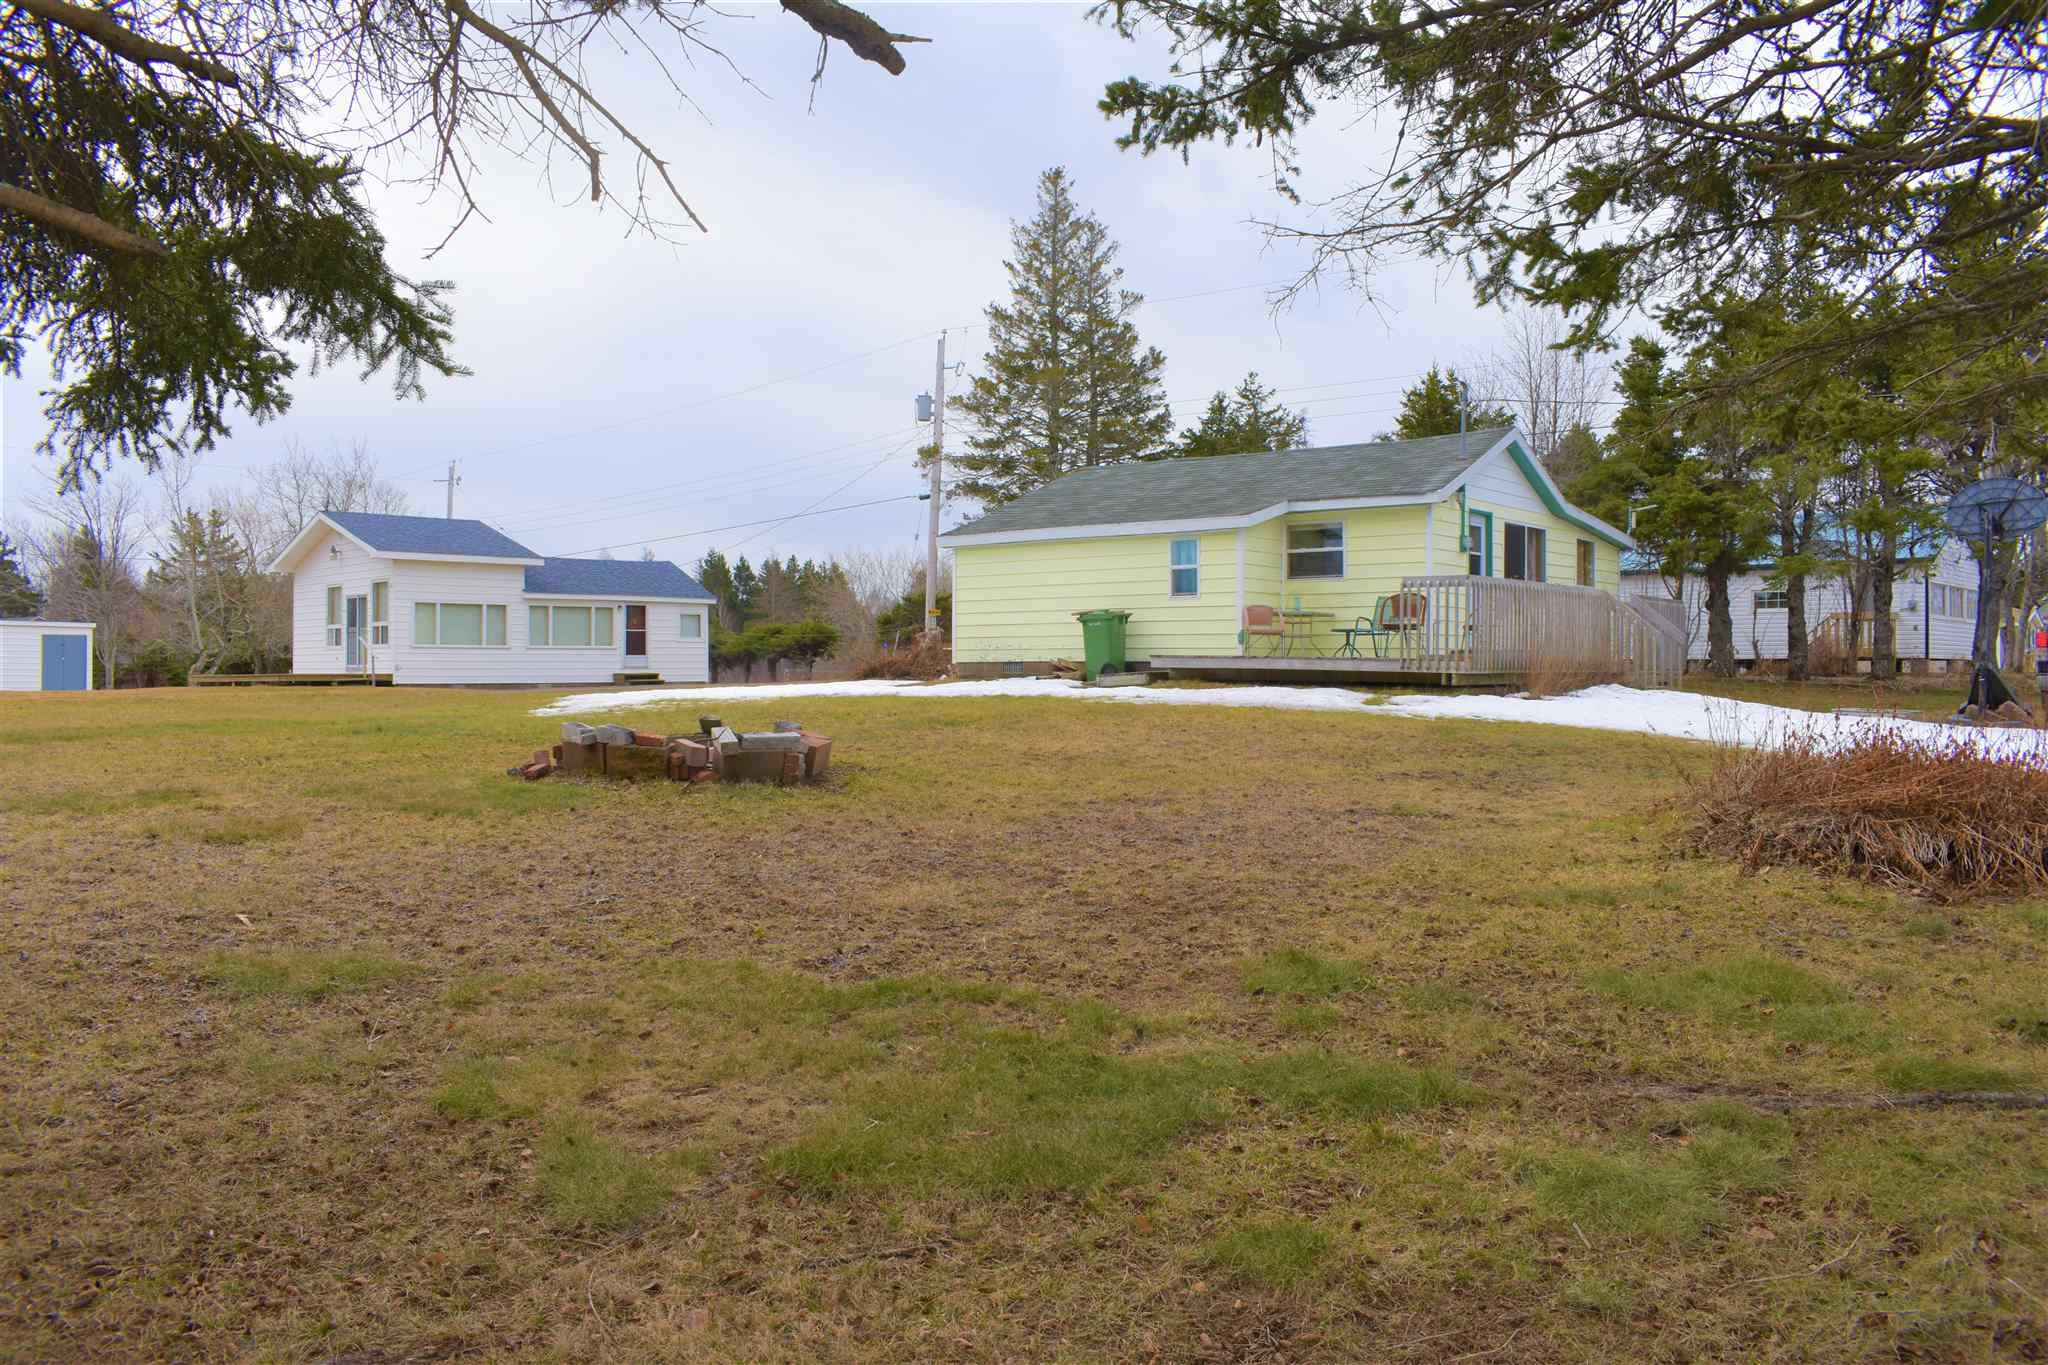 Main Photo: 9 Hillcrest Drive in Tidnish Bridge: 102N-North Of Hwy 104 Residential for sale (Northern Region)  : MLS®# 202106026